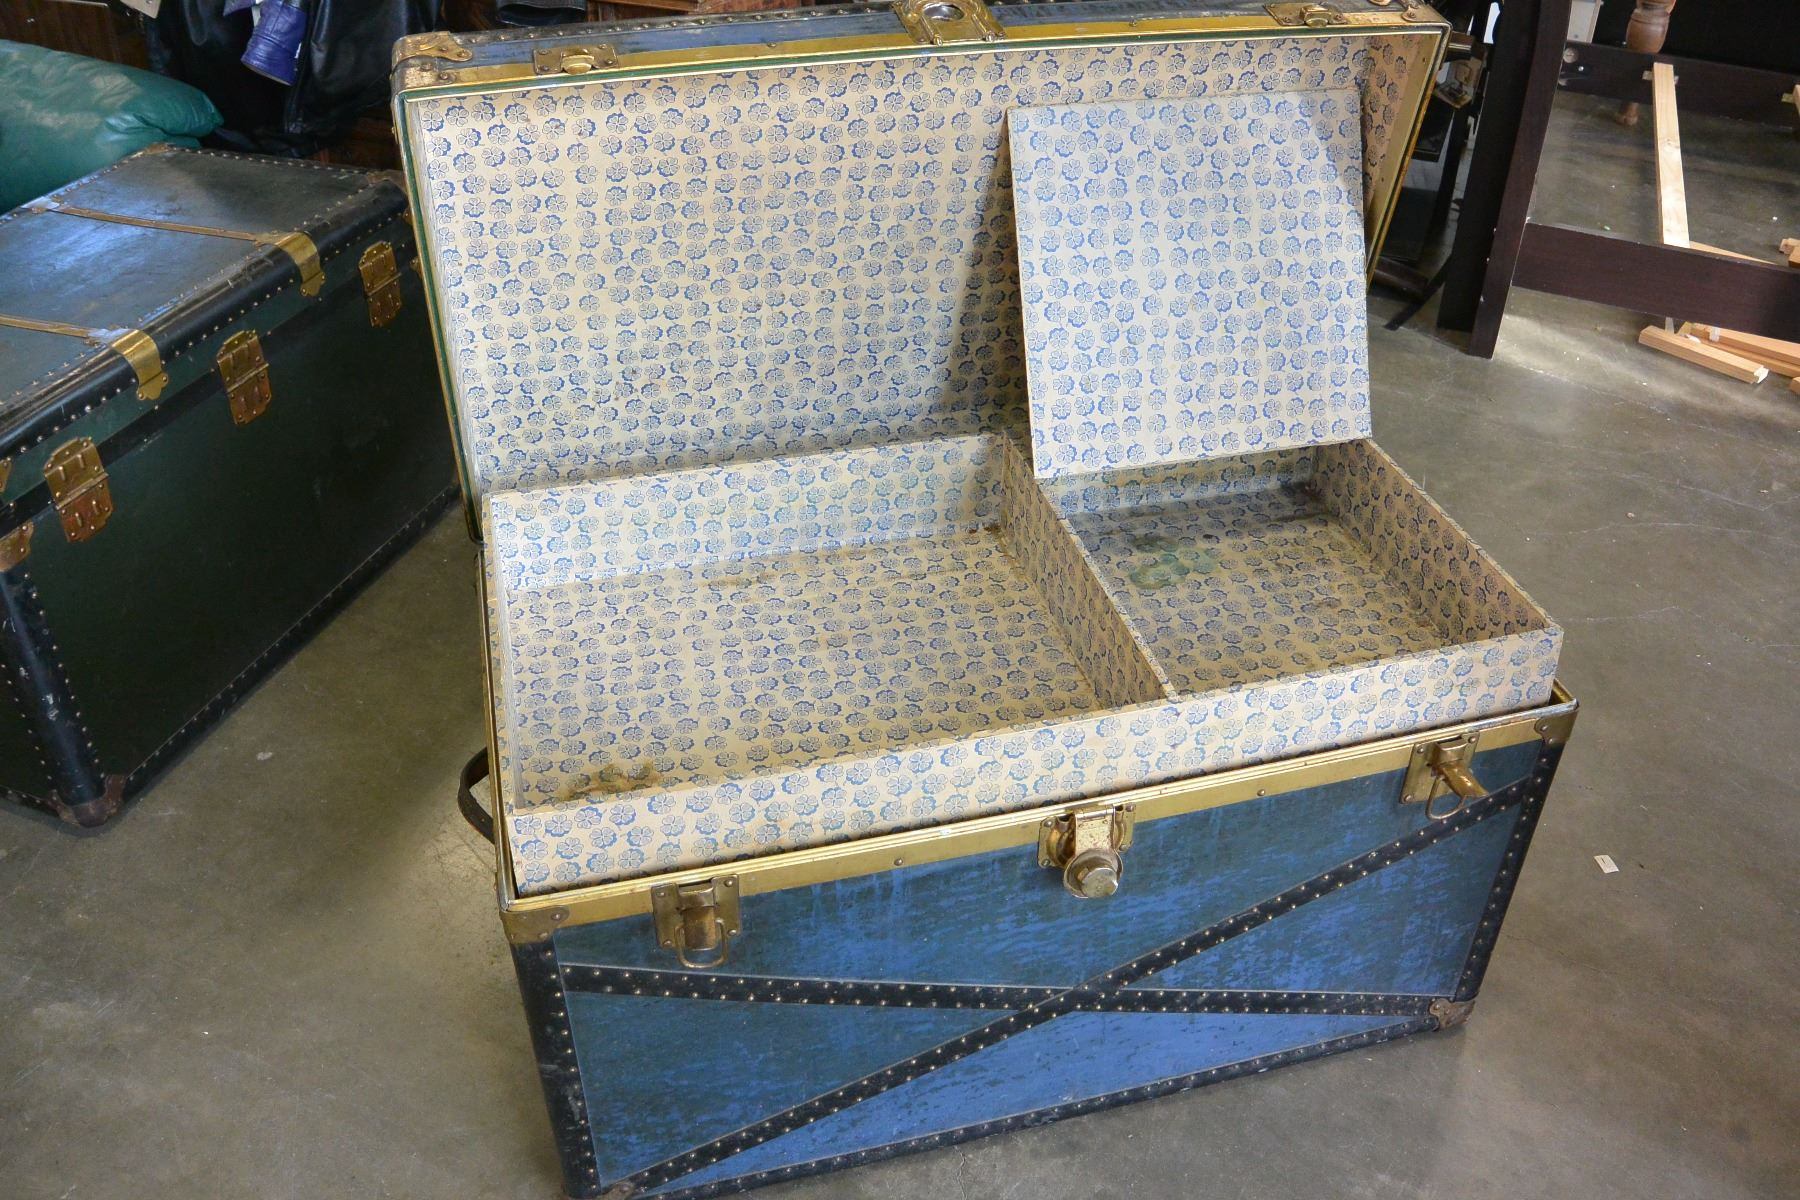 ... Image 3 : BLUE STORAGE TRUNK WITH TRAY ...